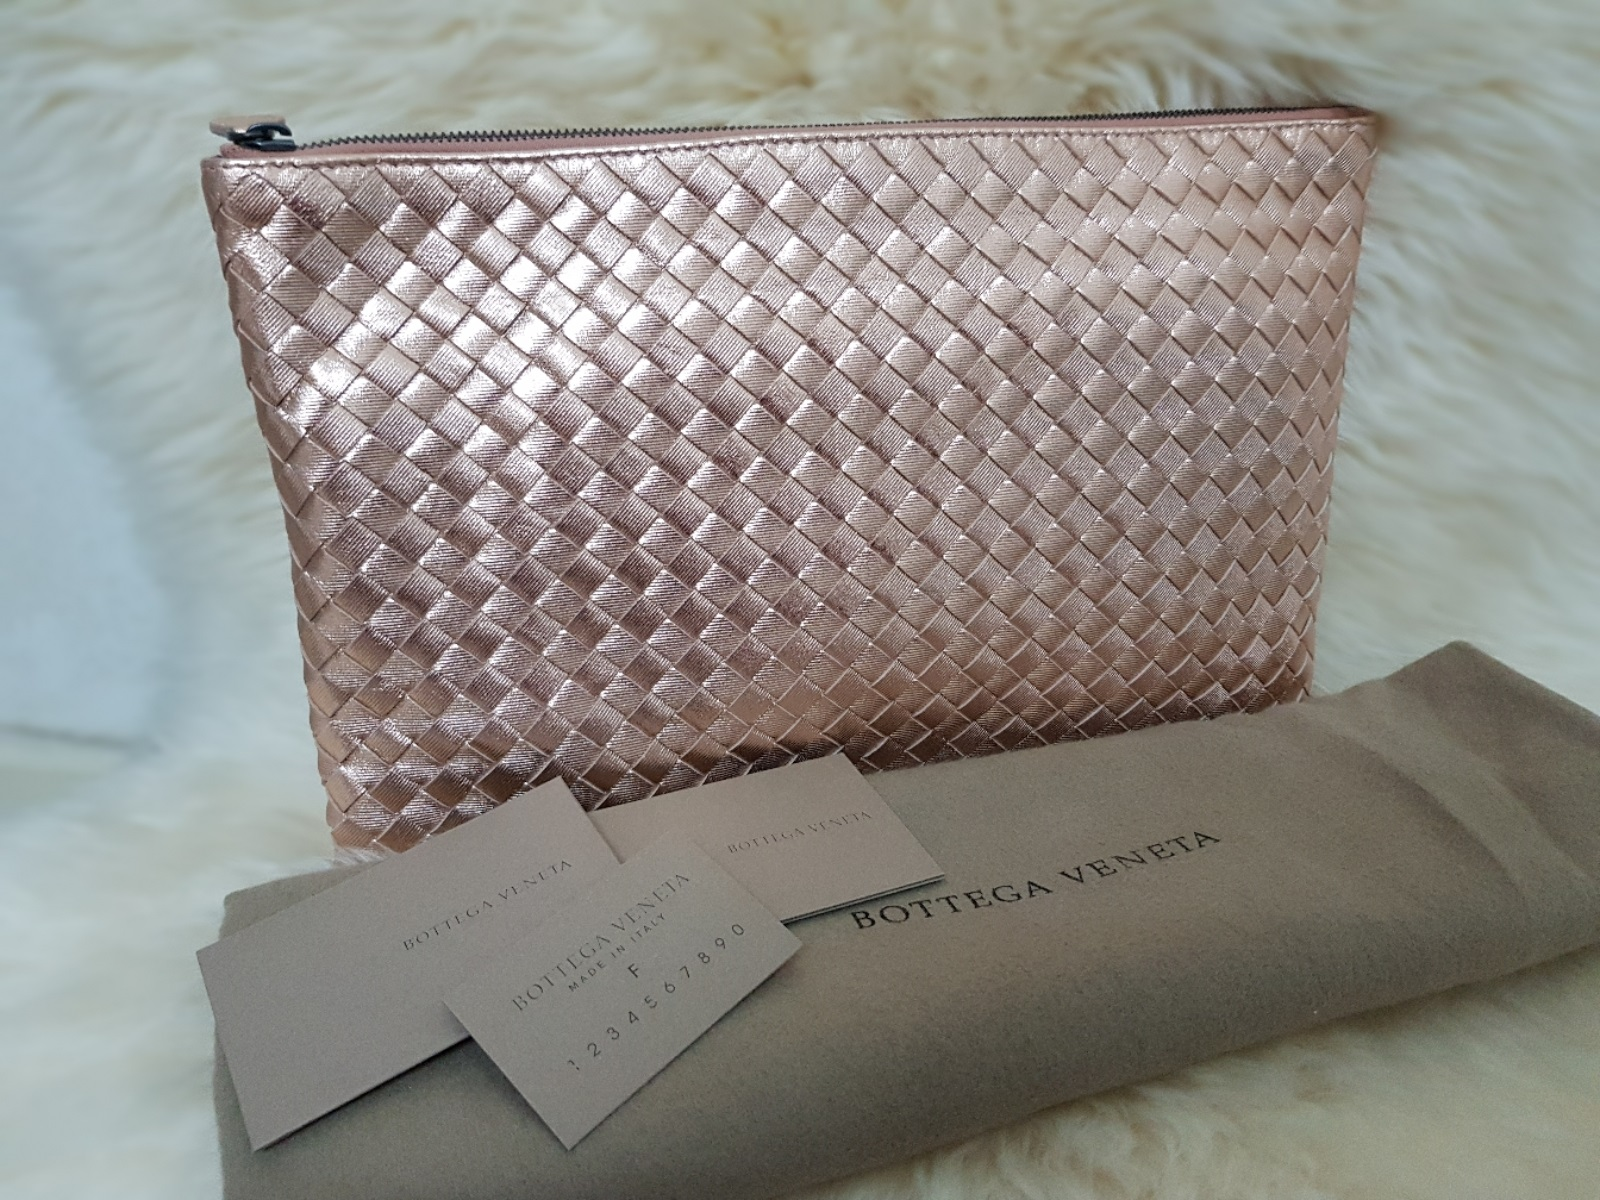 1301238baf6 Bottega Veneta Document Case Measurement : 30cm(W) x 19cm (H) Selling Price  : SGD870 / RM2600 nett Condition : Brand New/Unused Comes with dustbag +  serial ...